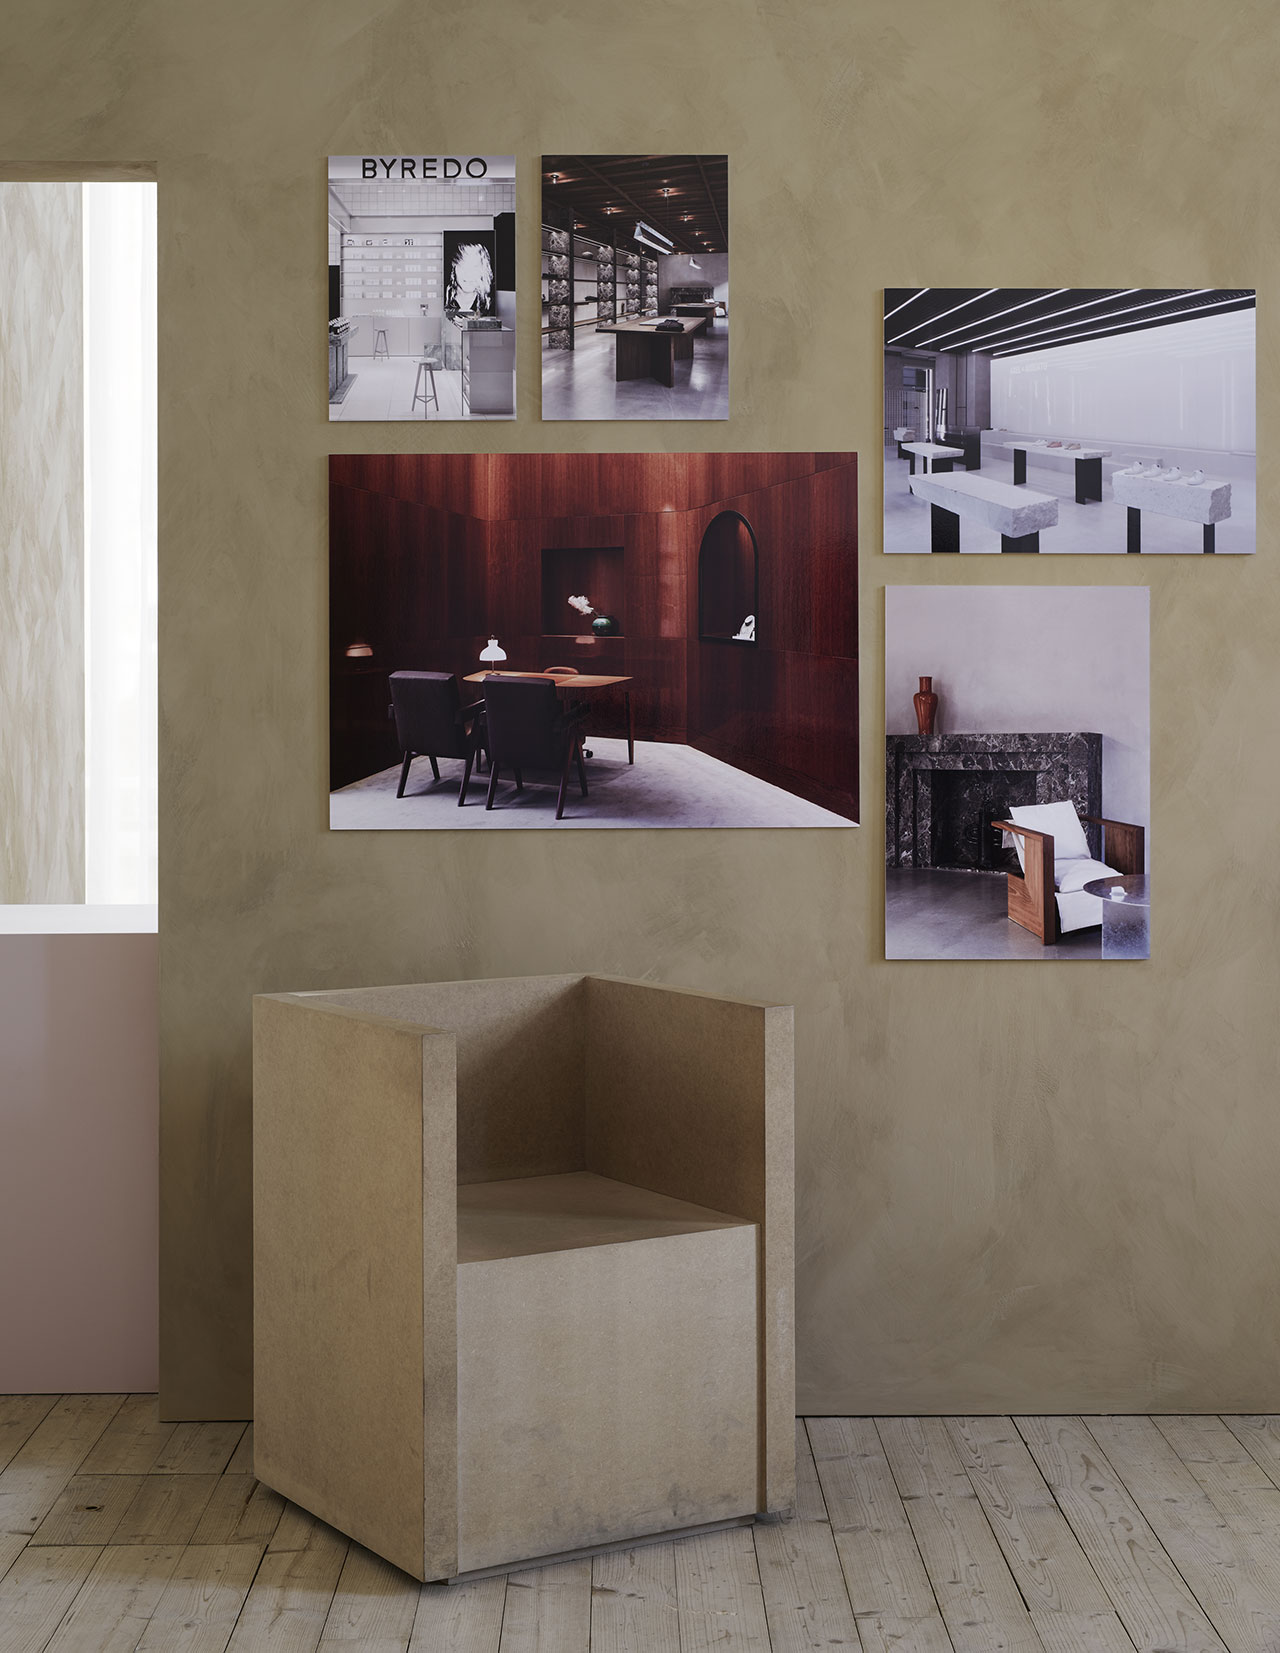 Christian Halleröd, interior architect. Prototype of the armchair, Byredo. Photographs, from the left: Byredo at Åhléns, Stockholm, on the right Frame Denim, Melrose Place, Los Angeles. Photo: Brendan Austin. Bottom left, Engelbert, Birger Jarlsgatan Stockholm. Brendan Austin. Top right Axel Arigato, Broadwick Street, London. Photo: Mikael Olsson Nere. Bottom right Frame Denim, Melrose Place, Los Angeles. Photo: Michael Weber.  Photo by Kristofer Johnsson.